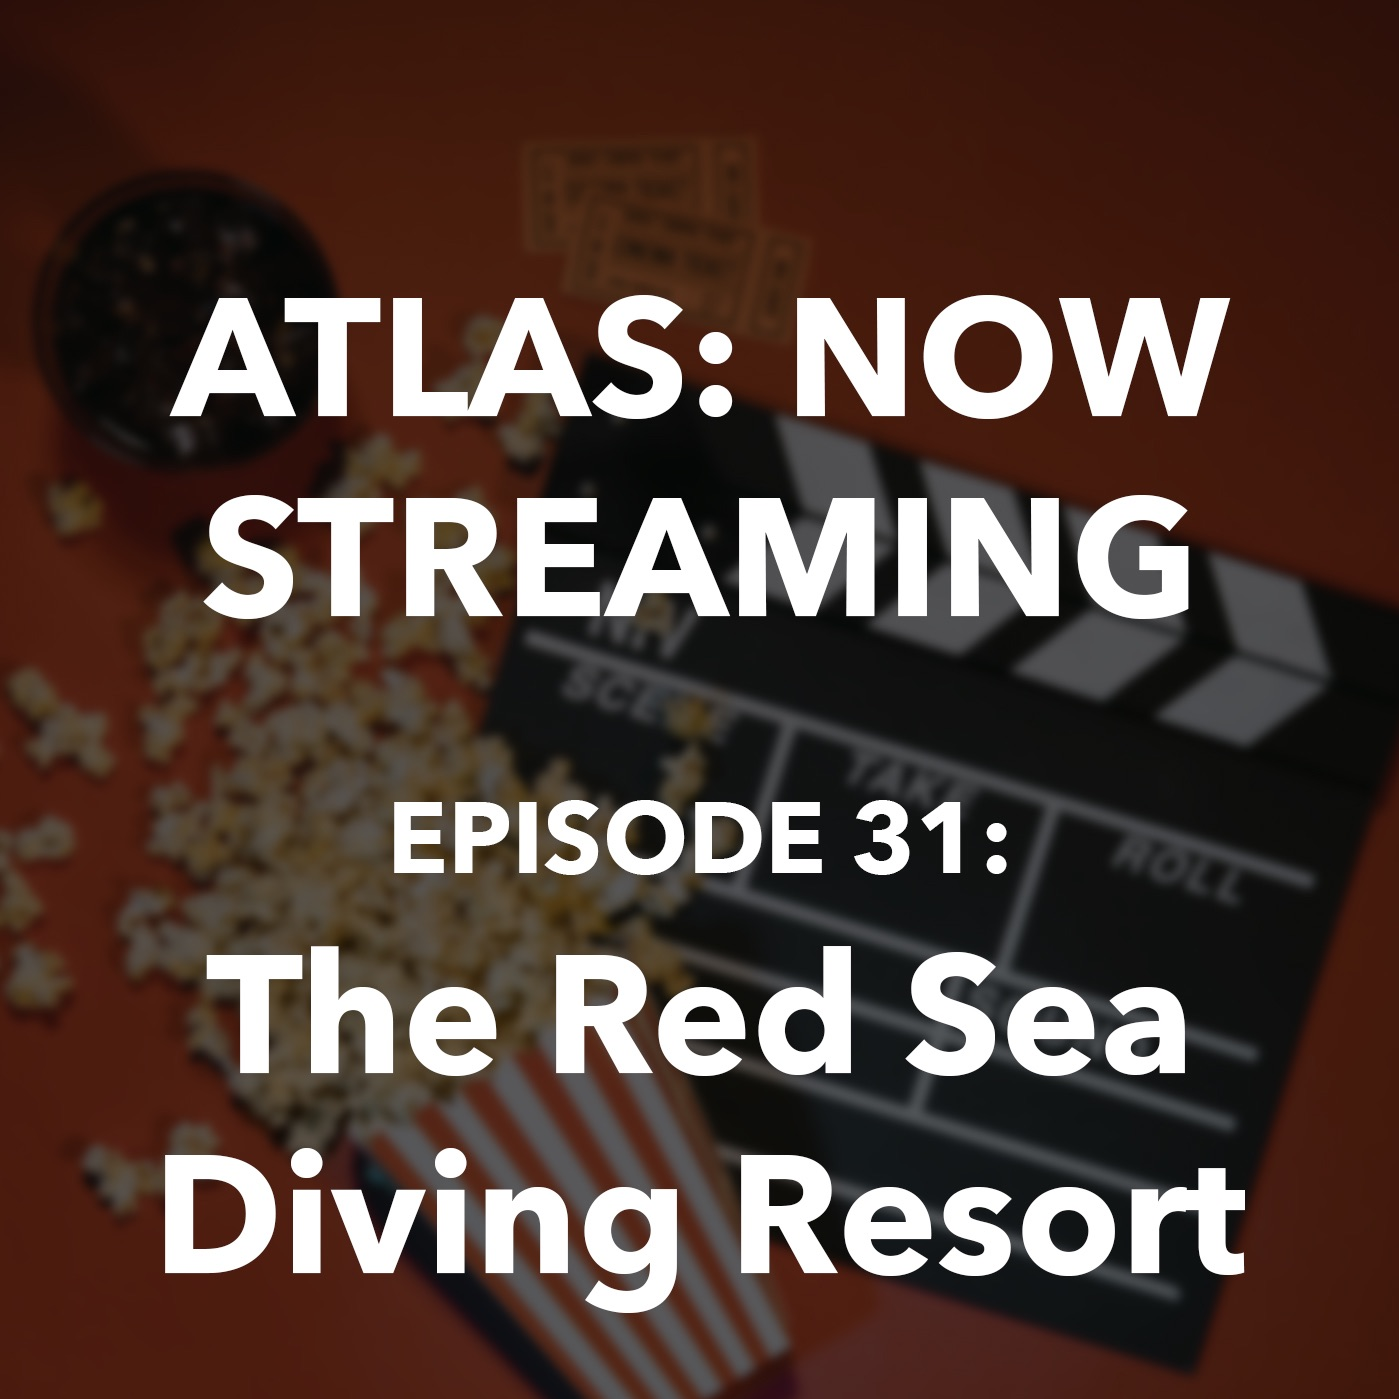 The Red Sea Diving Resort - Atlas: Now Streaming Episode 31